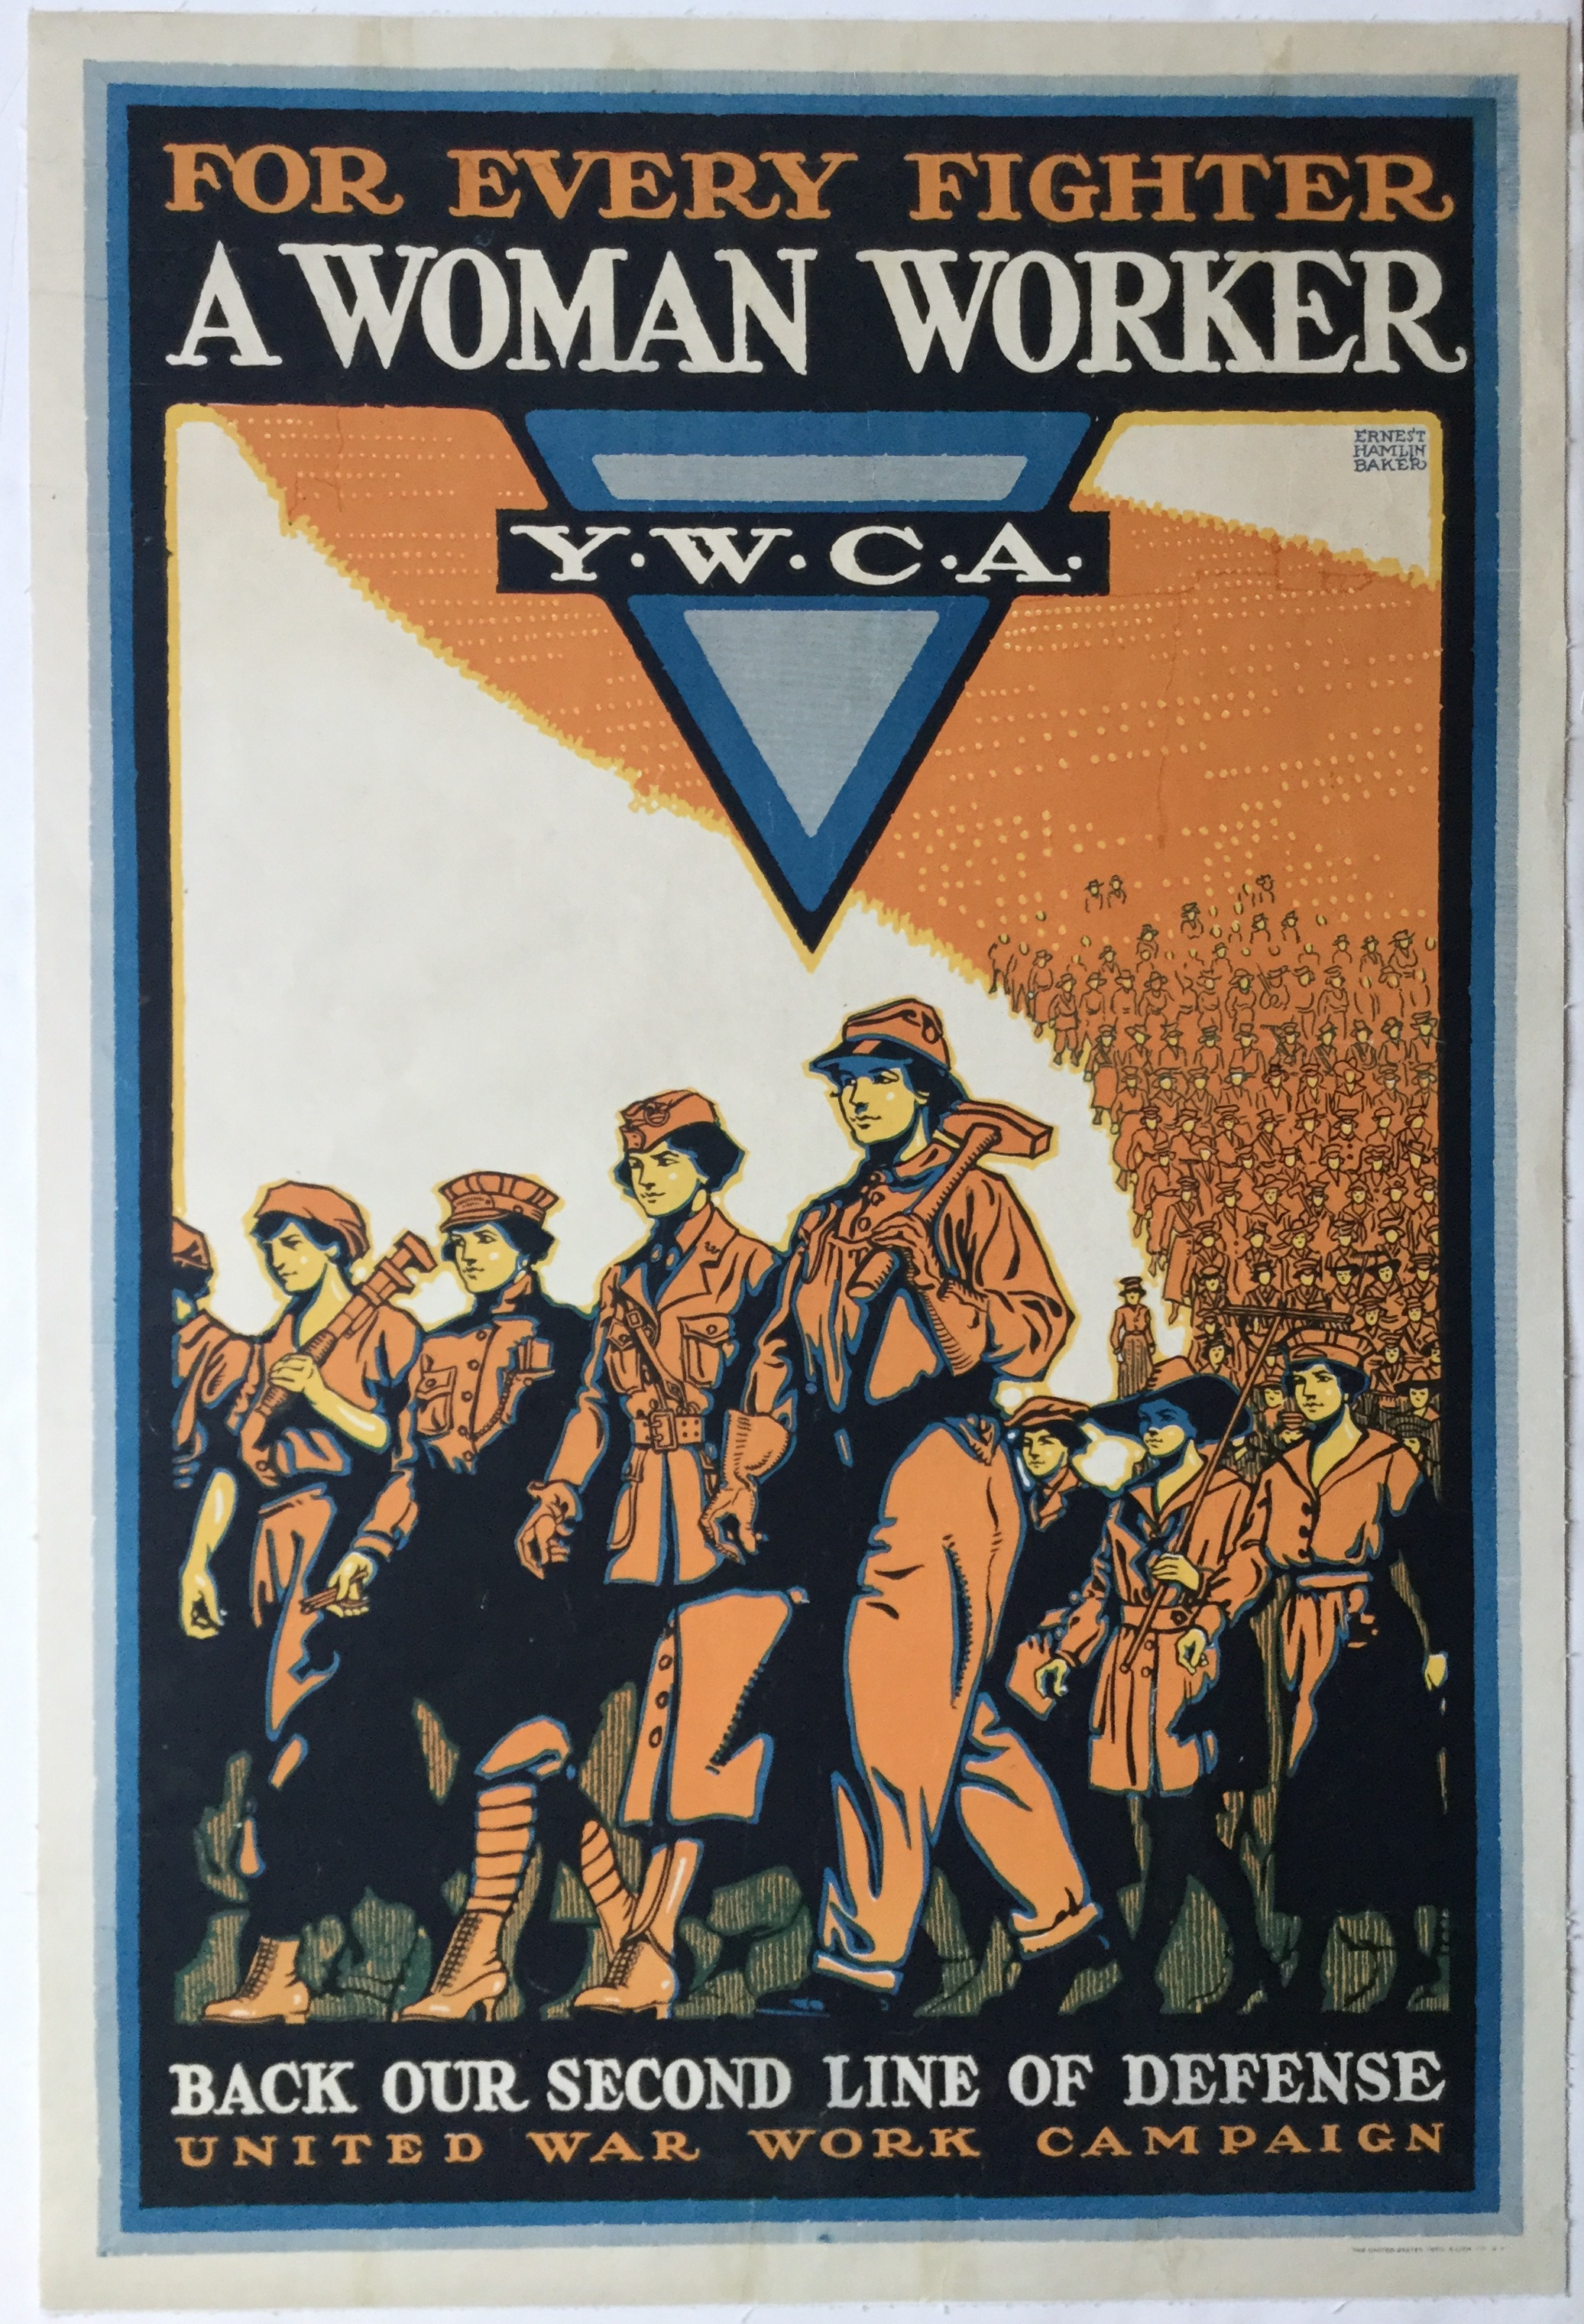 WW1245FOR EVERY FIGHTER A WOMAN WORKER - Y W C A